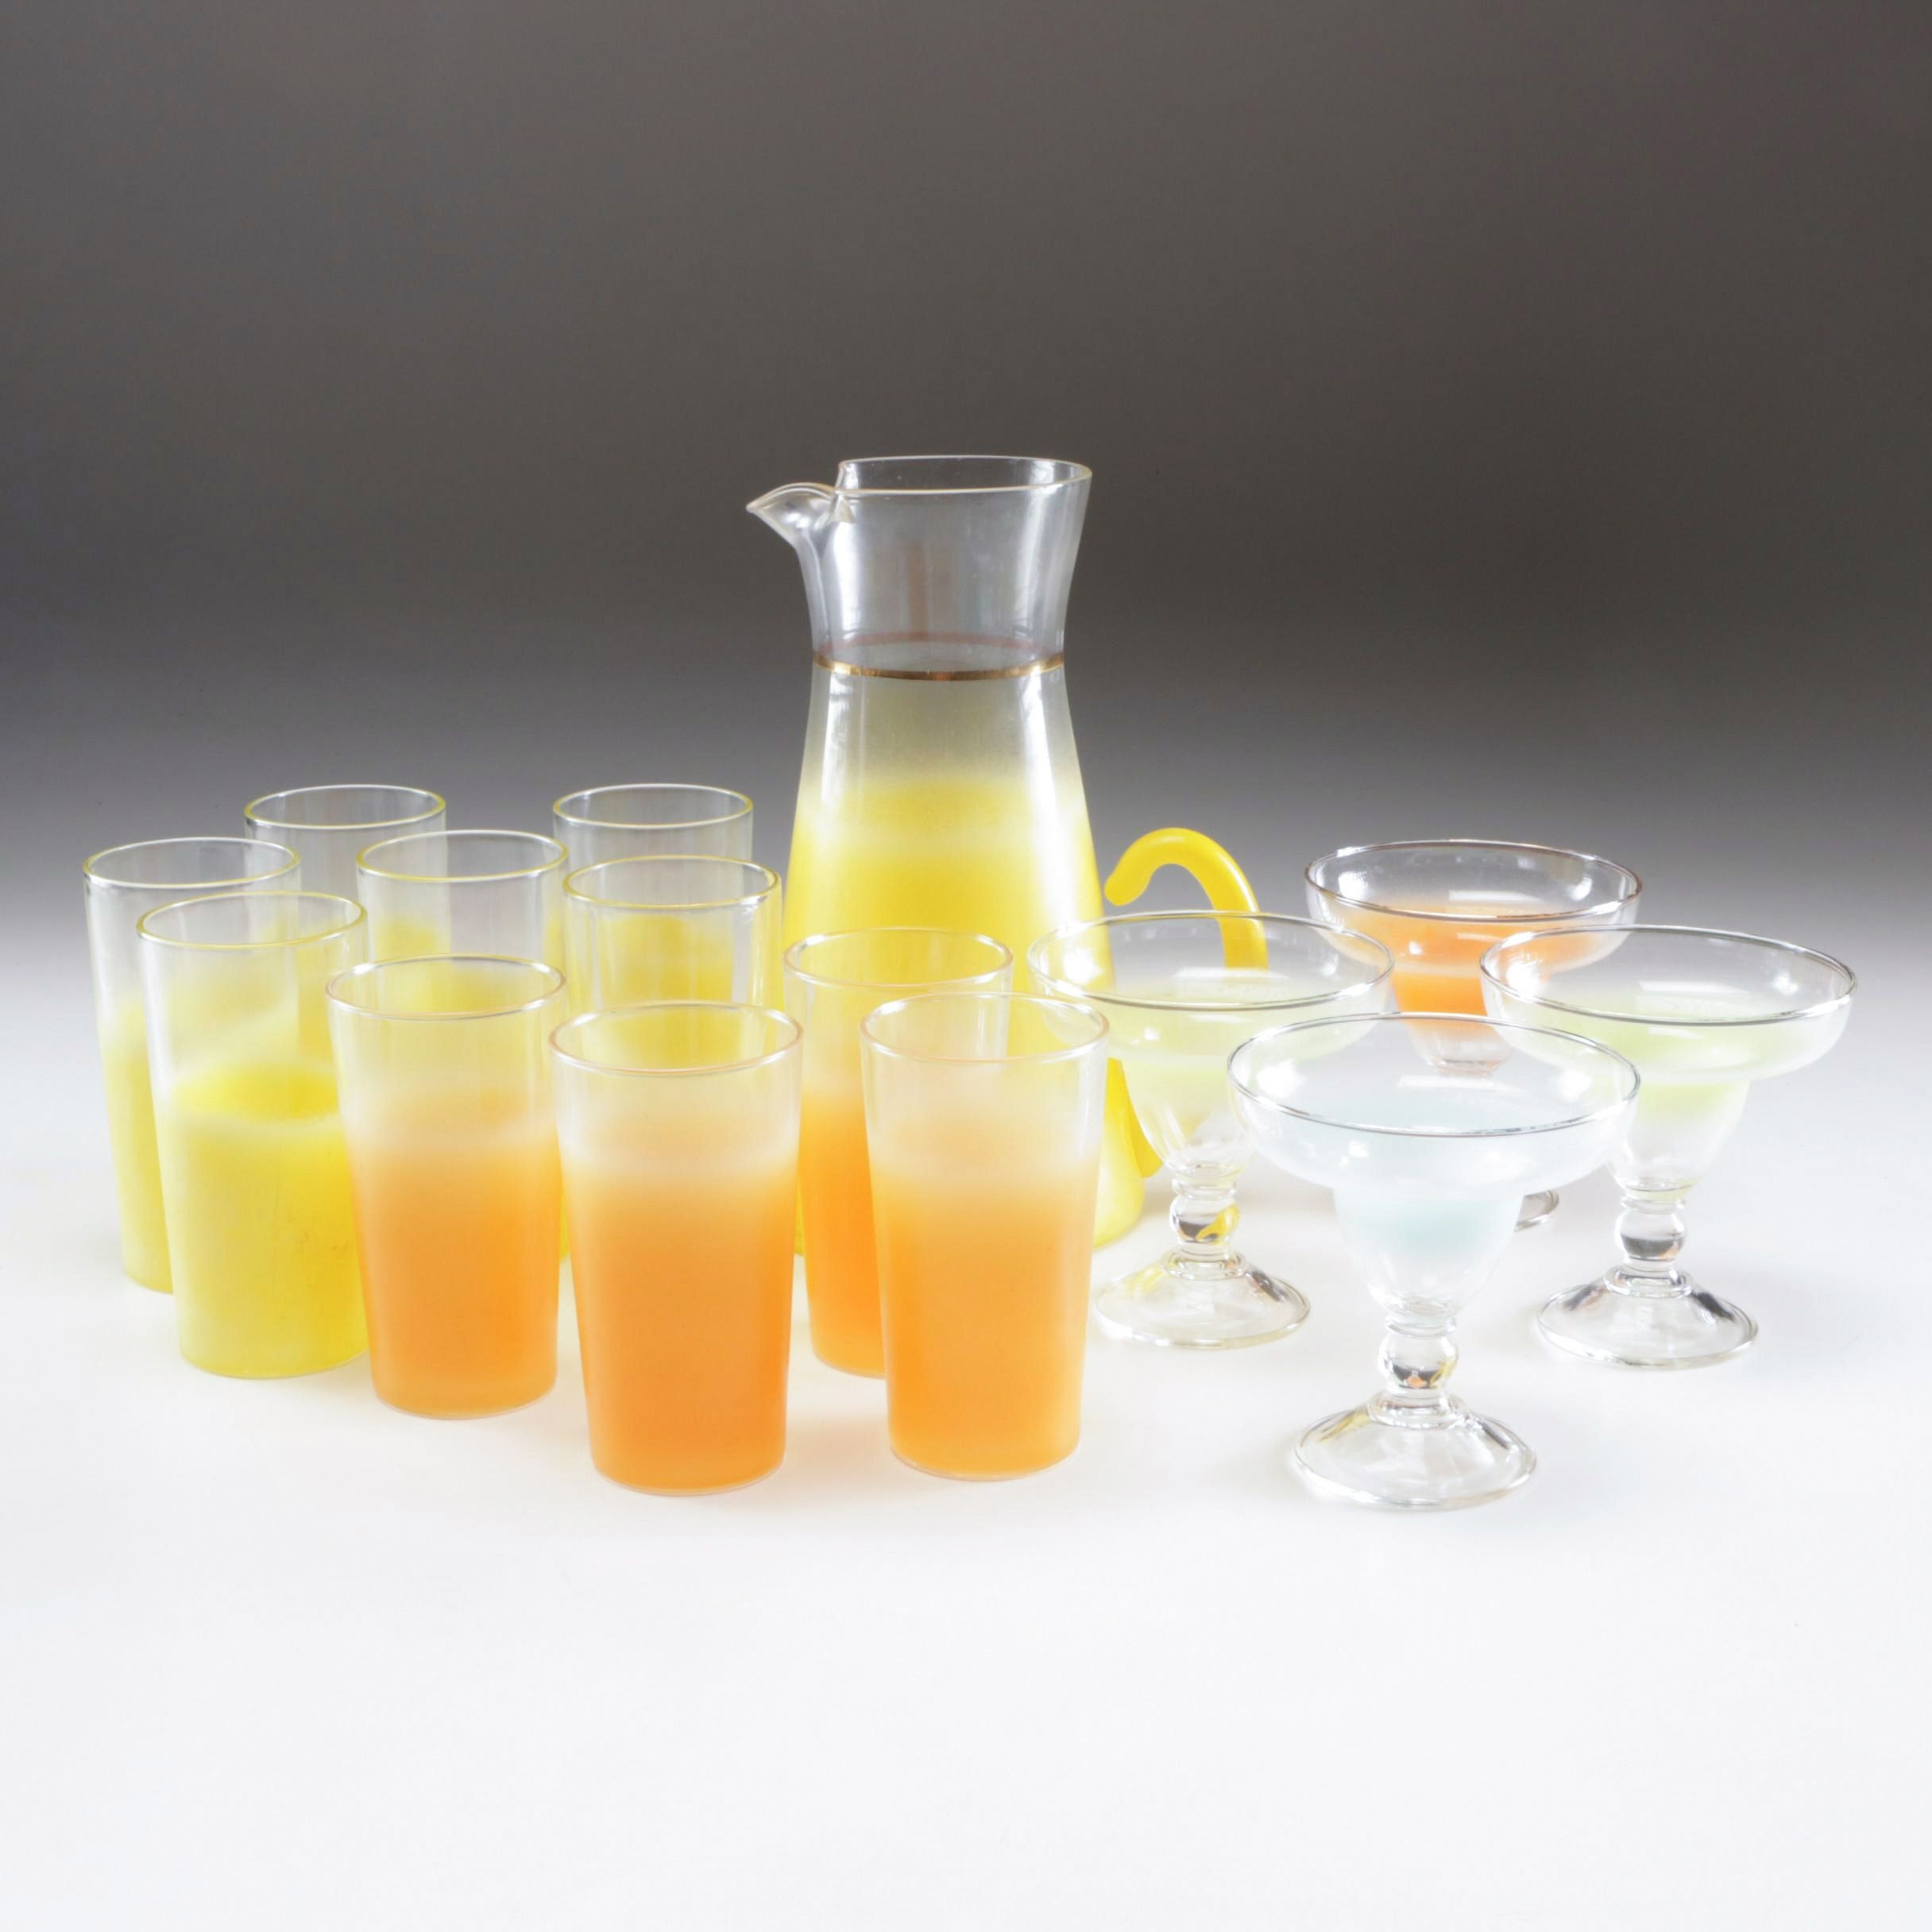 Blendo Glass Pitcher and Cocktail Glasses, Mid-Century